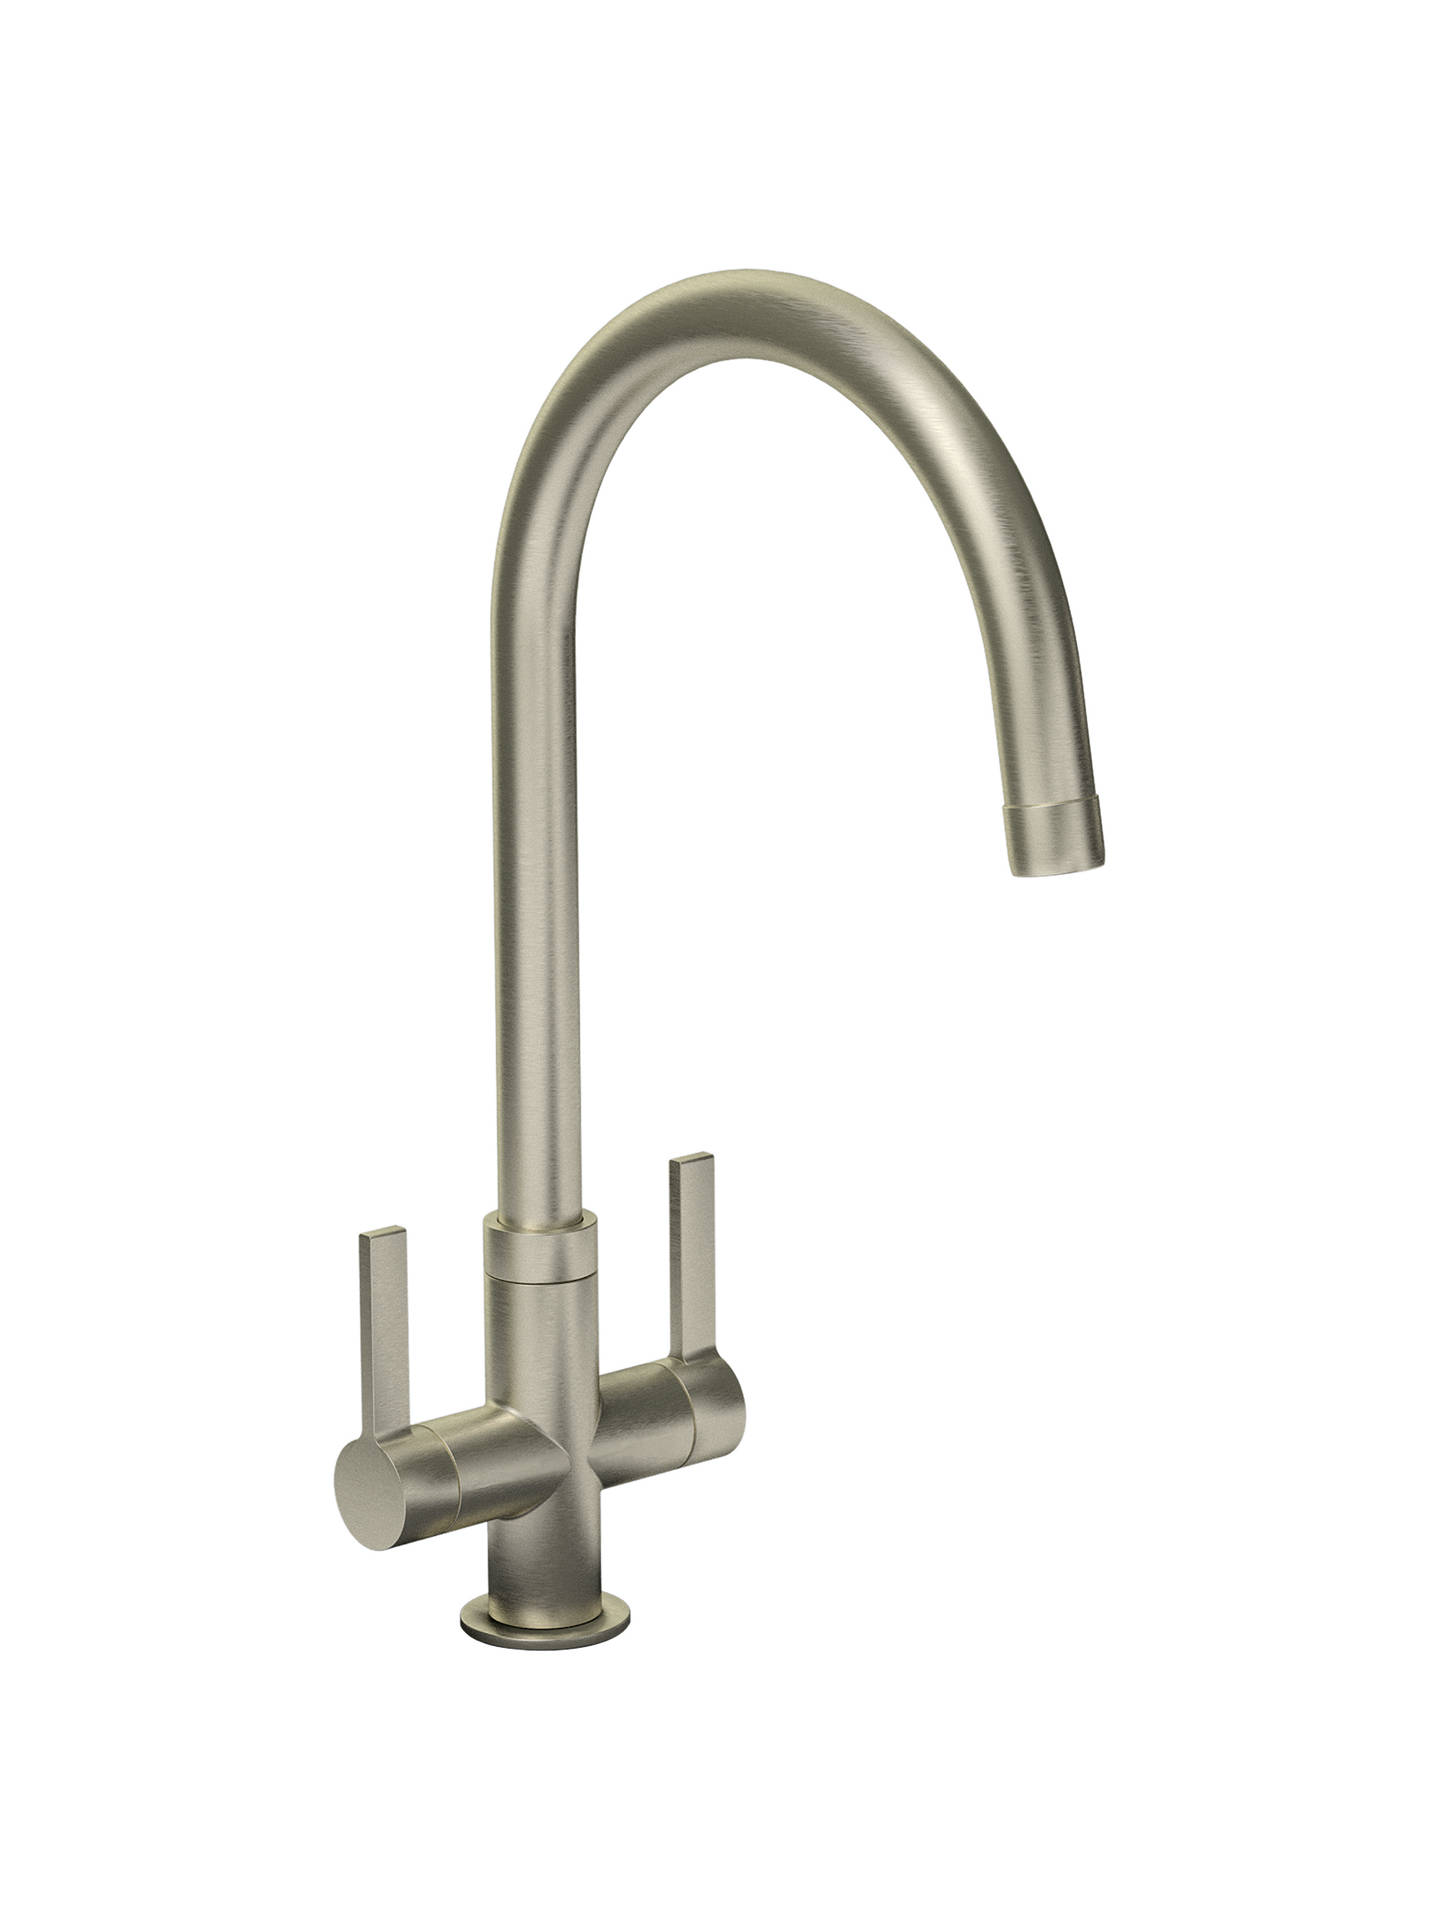 Buy Abode Pico 2 Lever Monobloc Kitchen Tap, Brushed Nickel Online at johnlewis.com